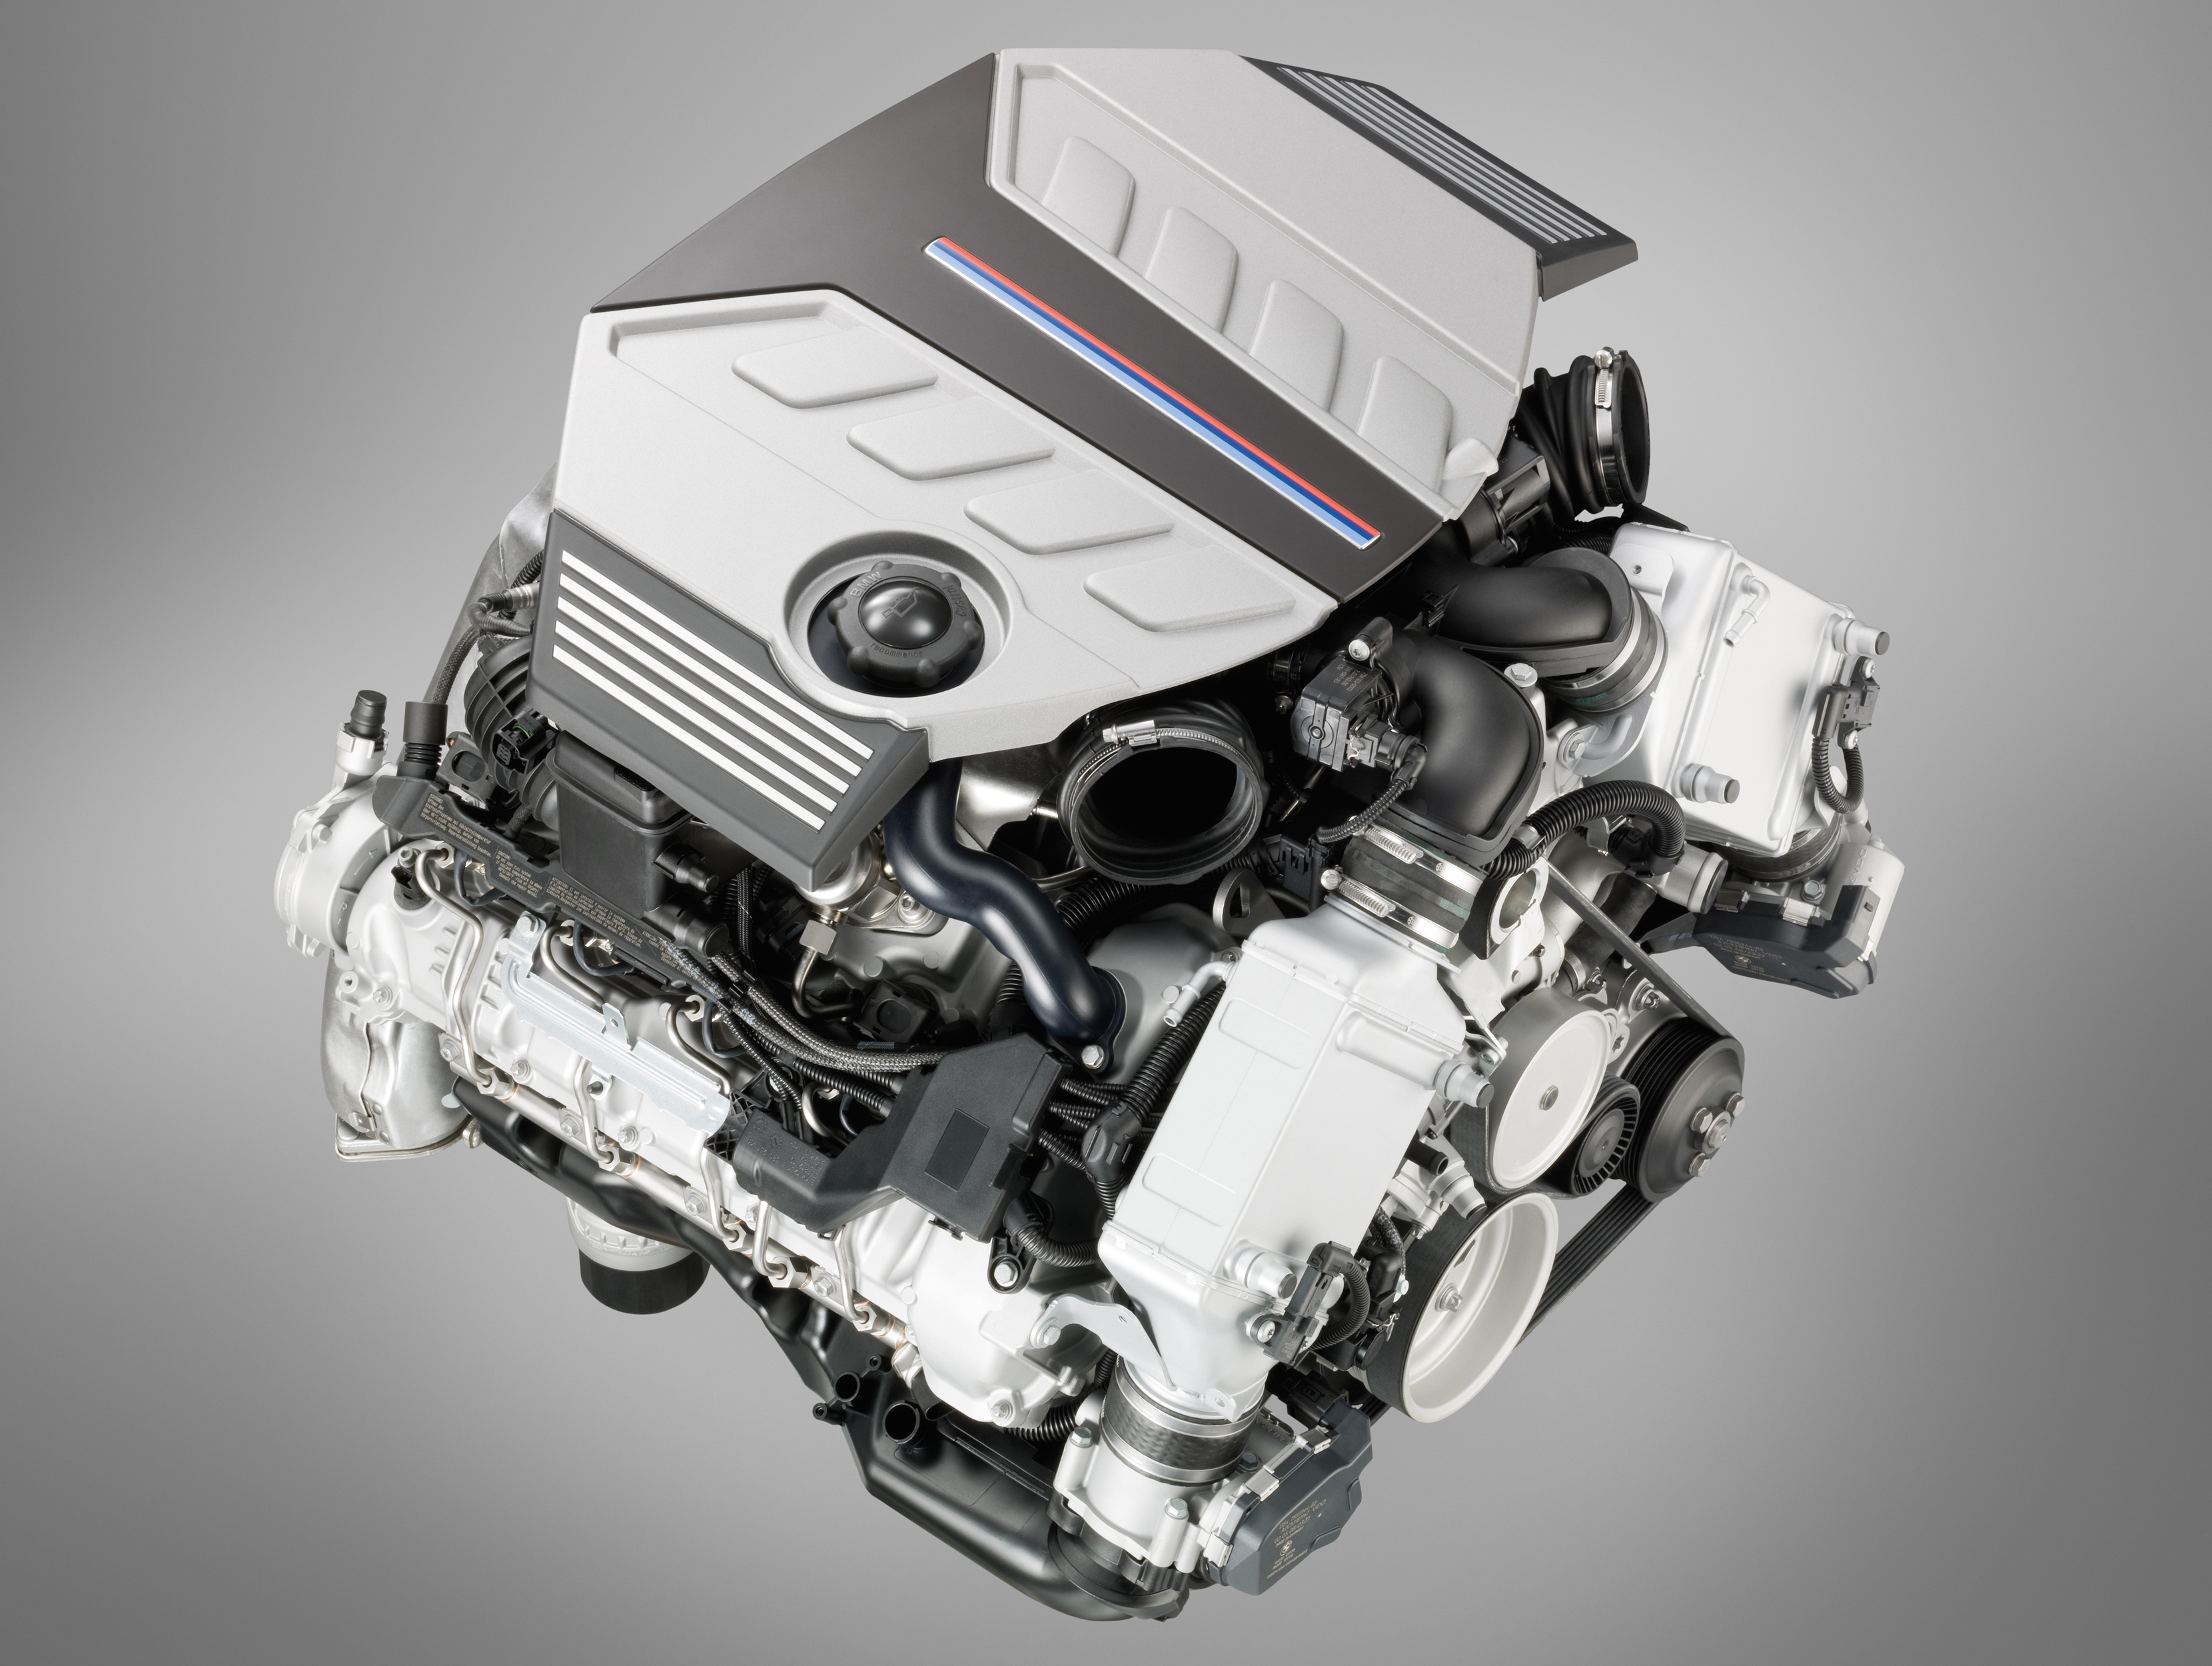 Engine Pictures BMW M5 F10 Concept!-p90045750.jpg